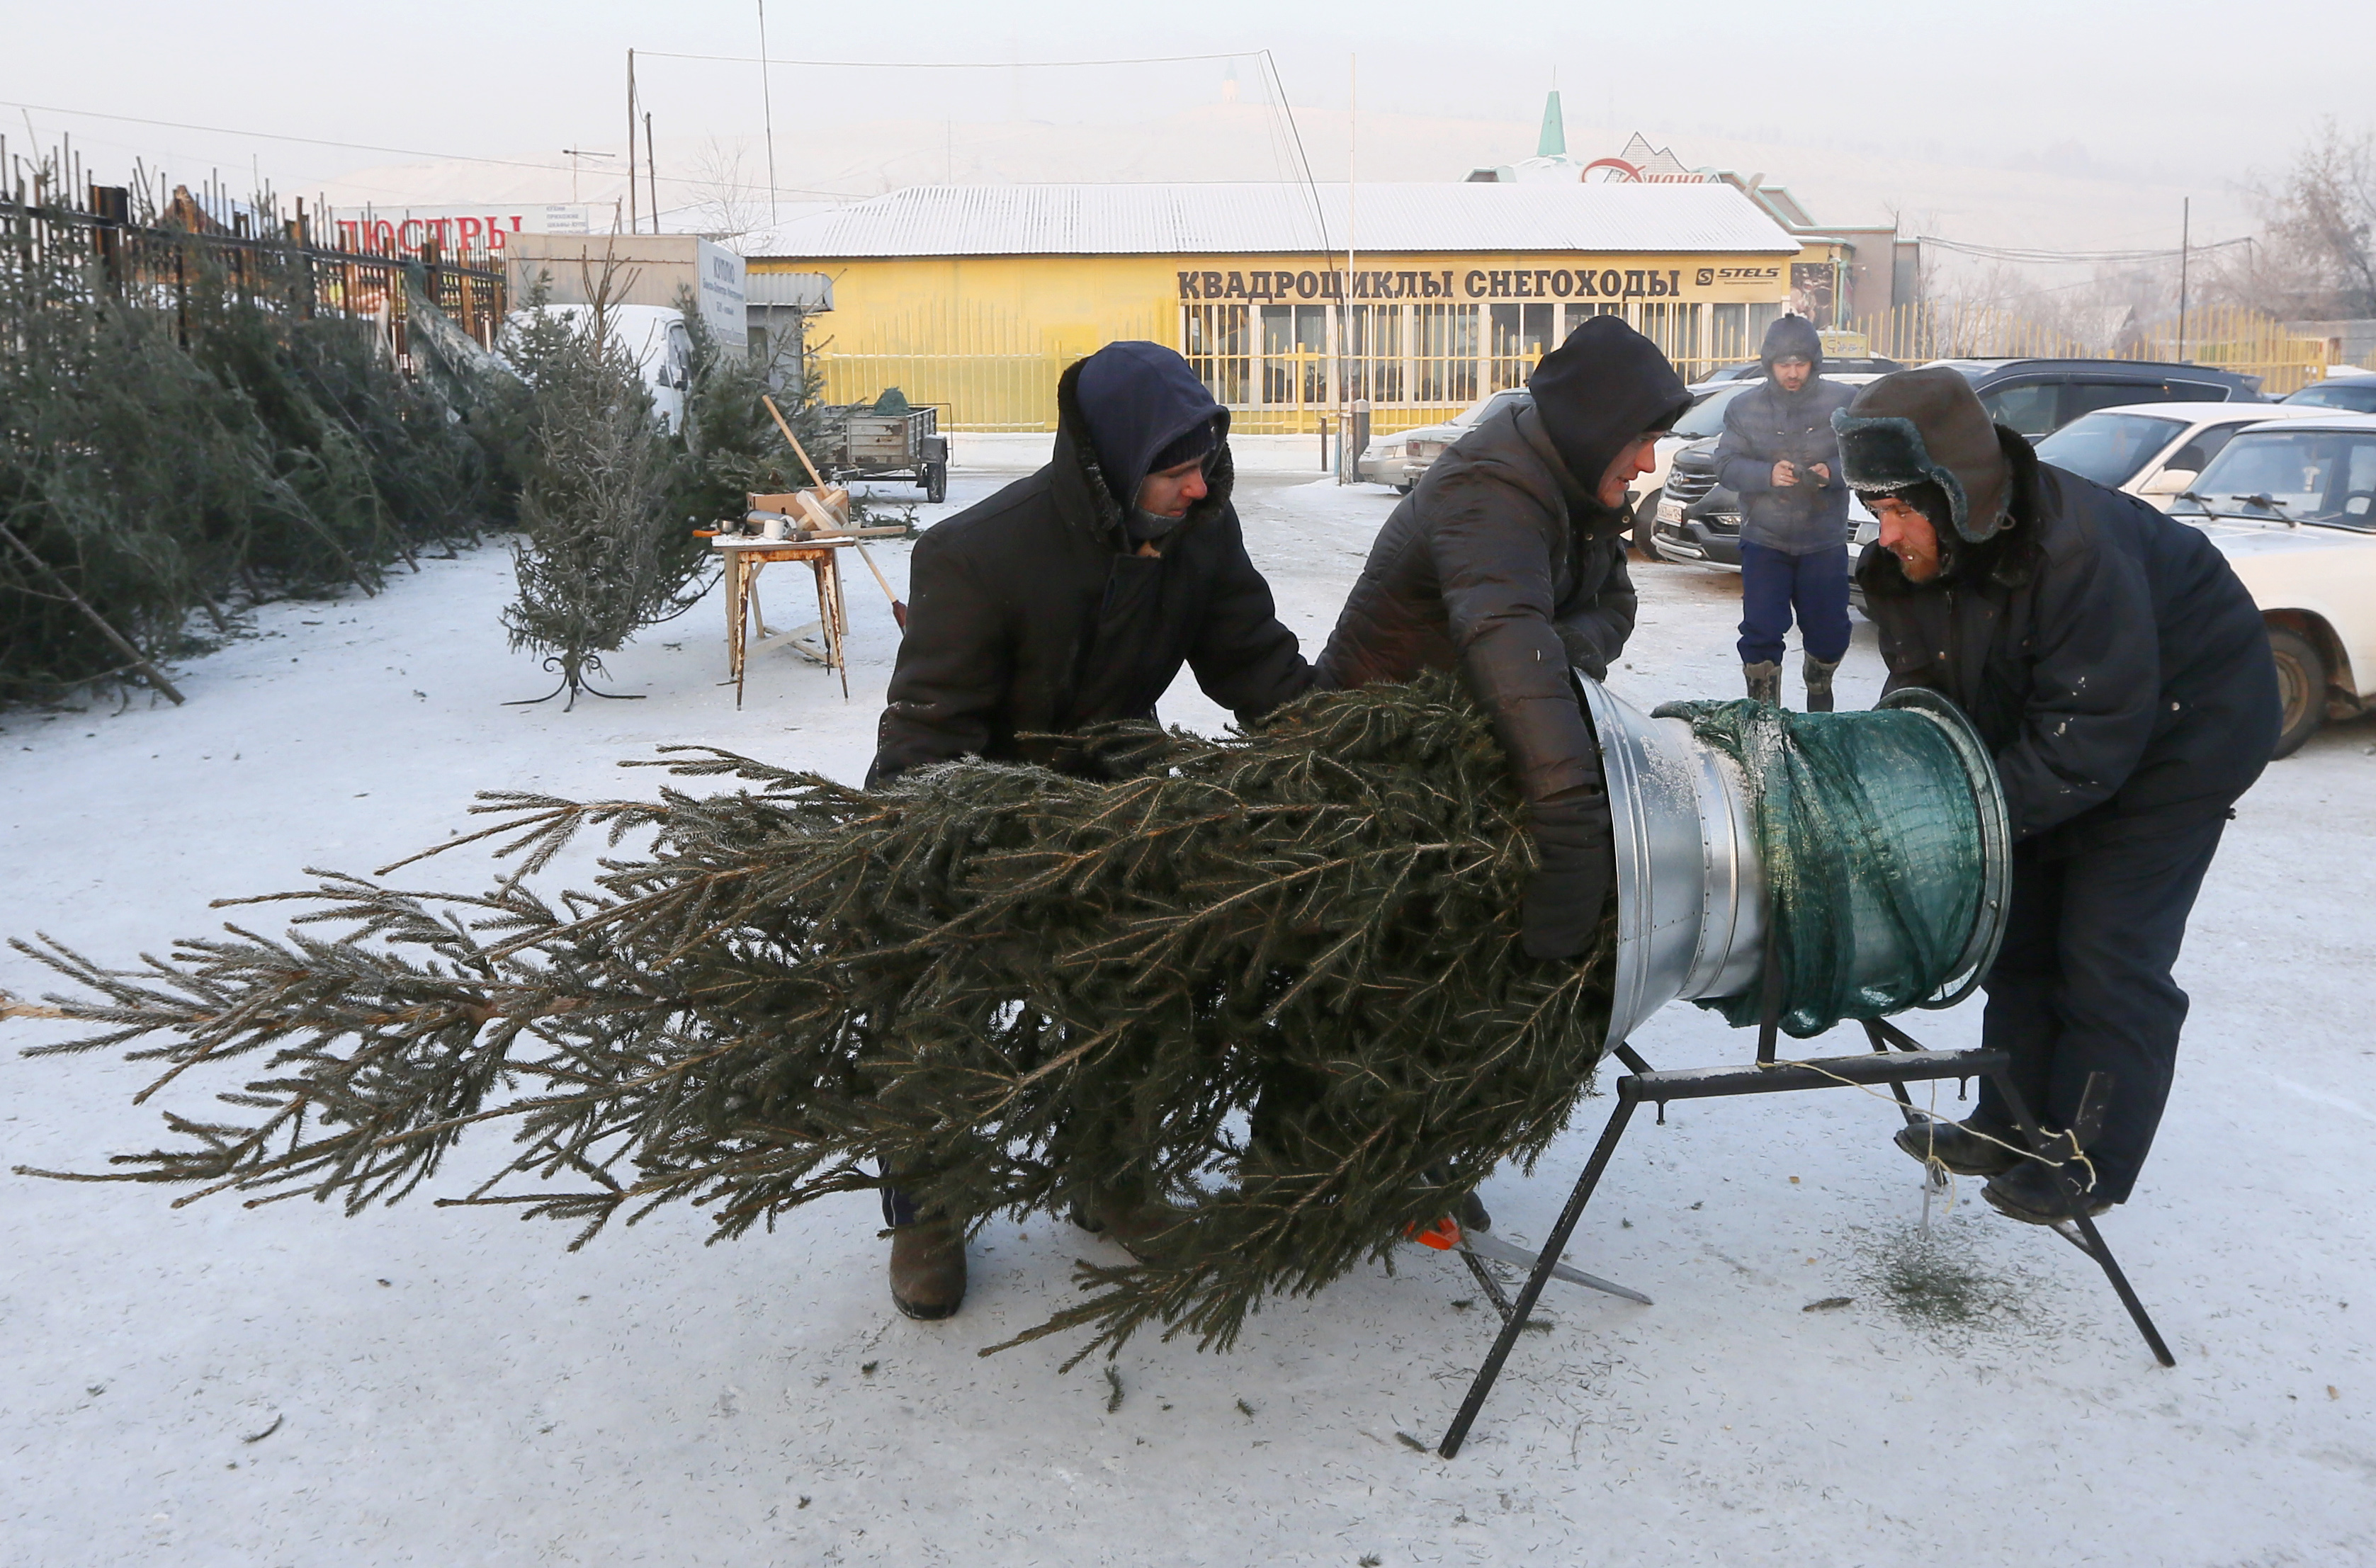 People shop for a New Year's tree at a street market with the air temperature of about -28 degrees Celsius in Krasnoyarsk, Siberia, Dec. 27, 2018.